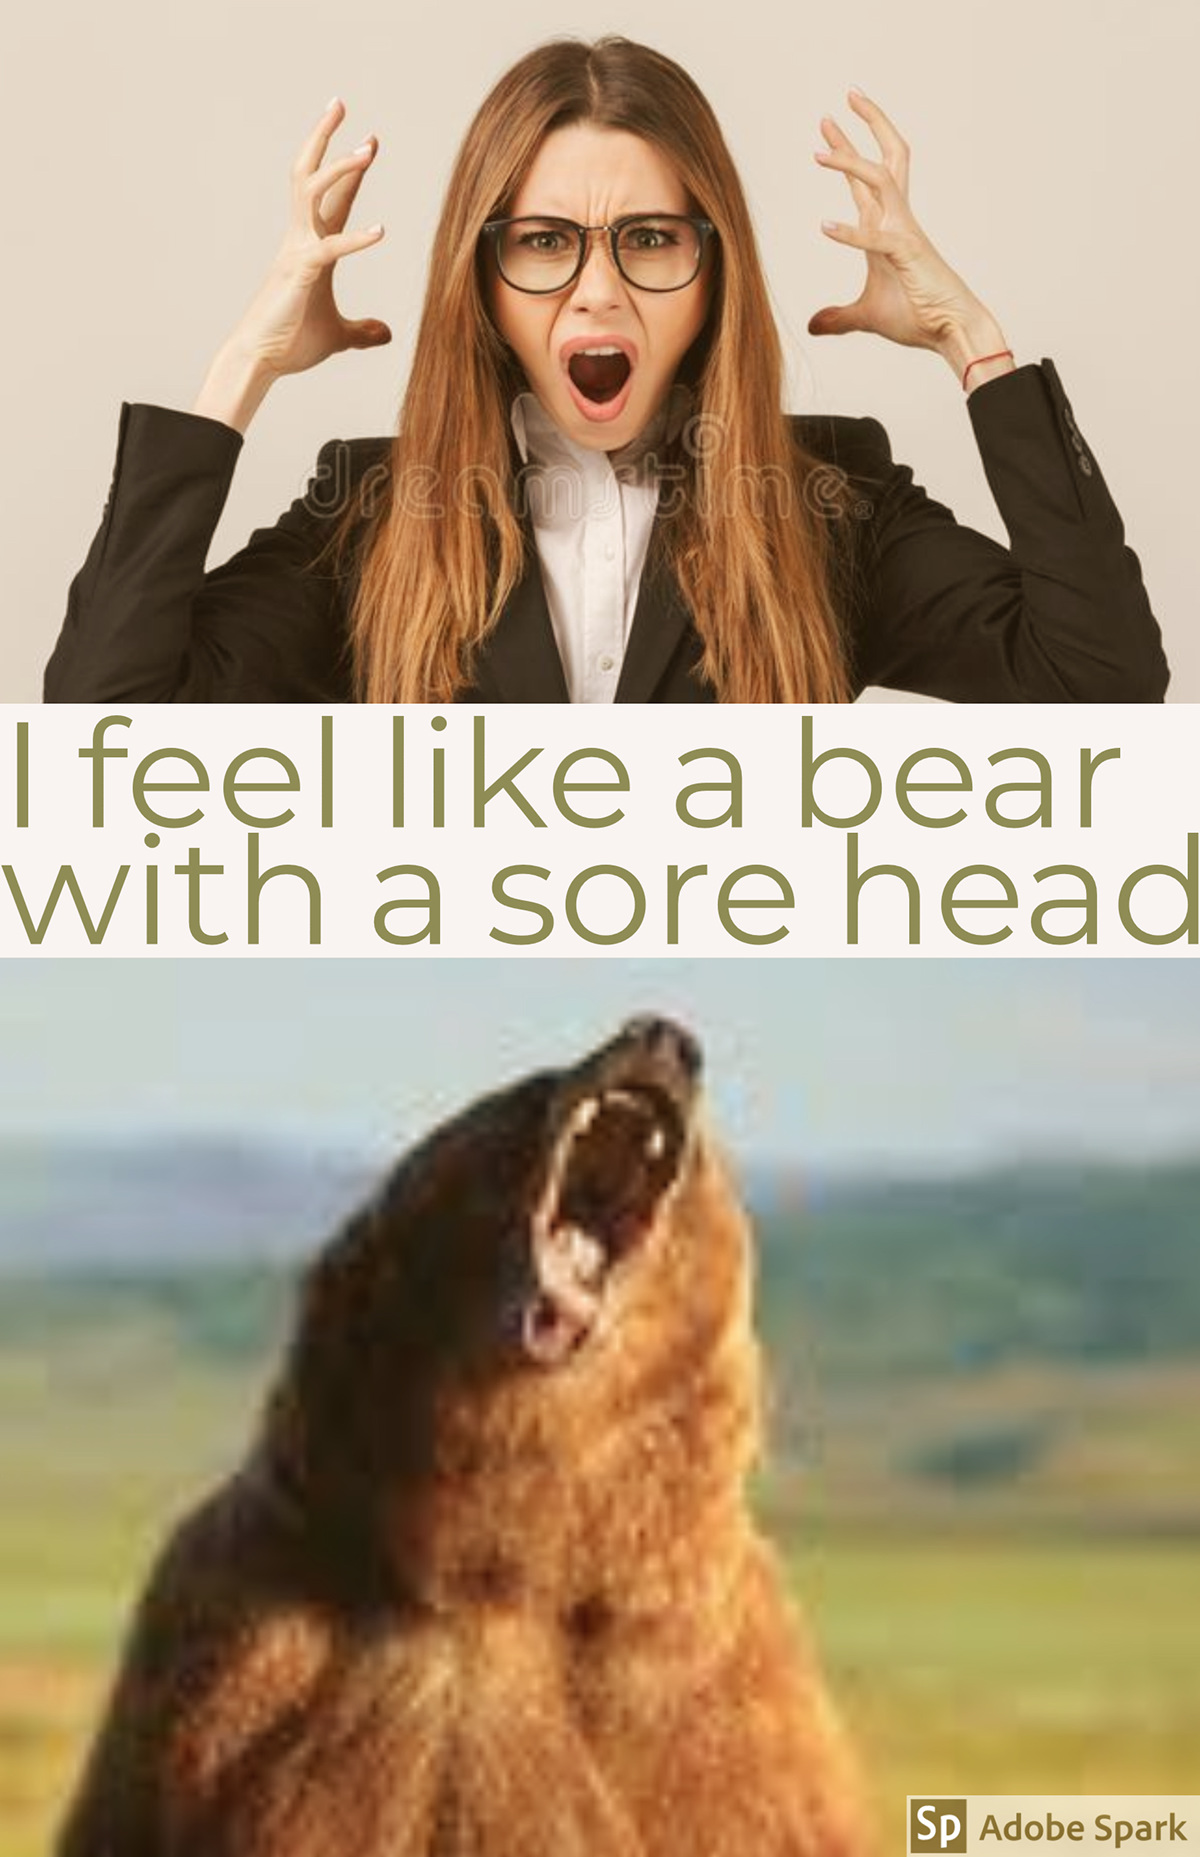 I feel like a bear with a sore head I feel like a bear with a sore head